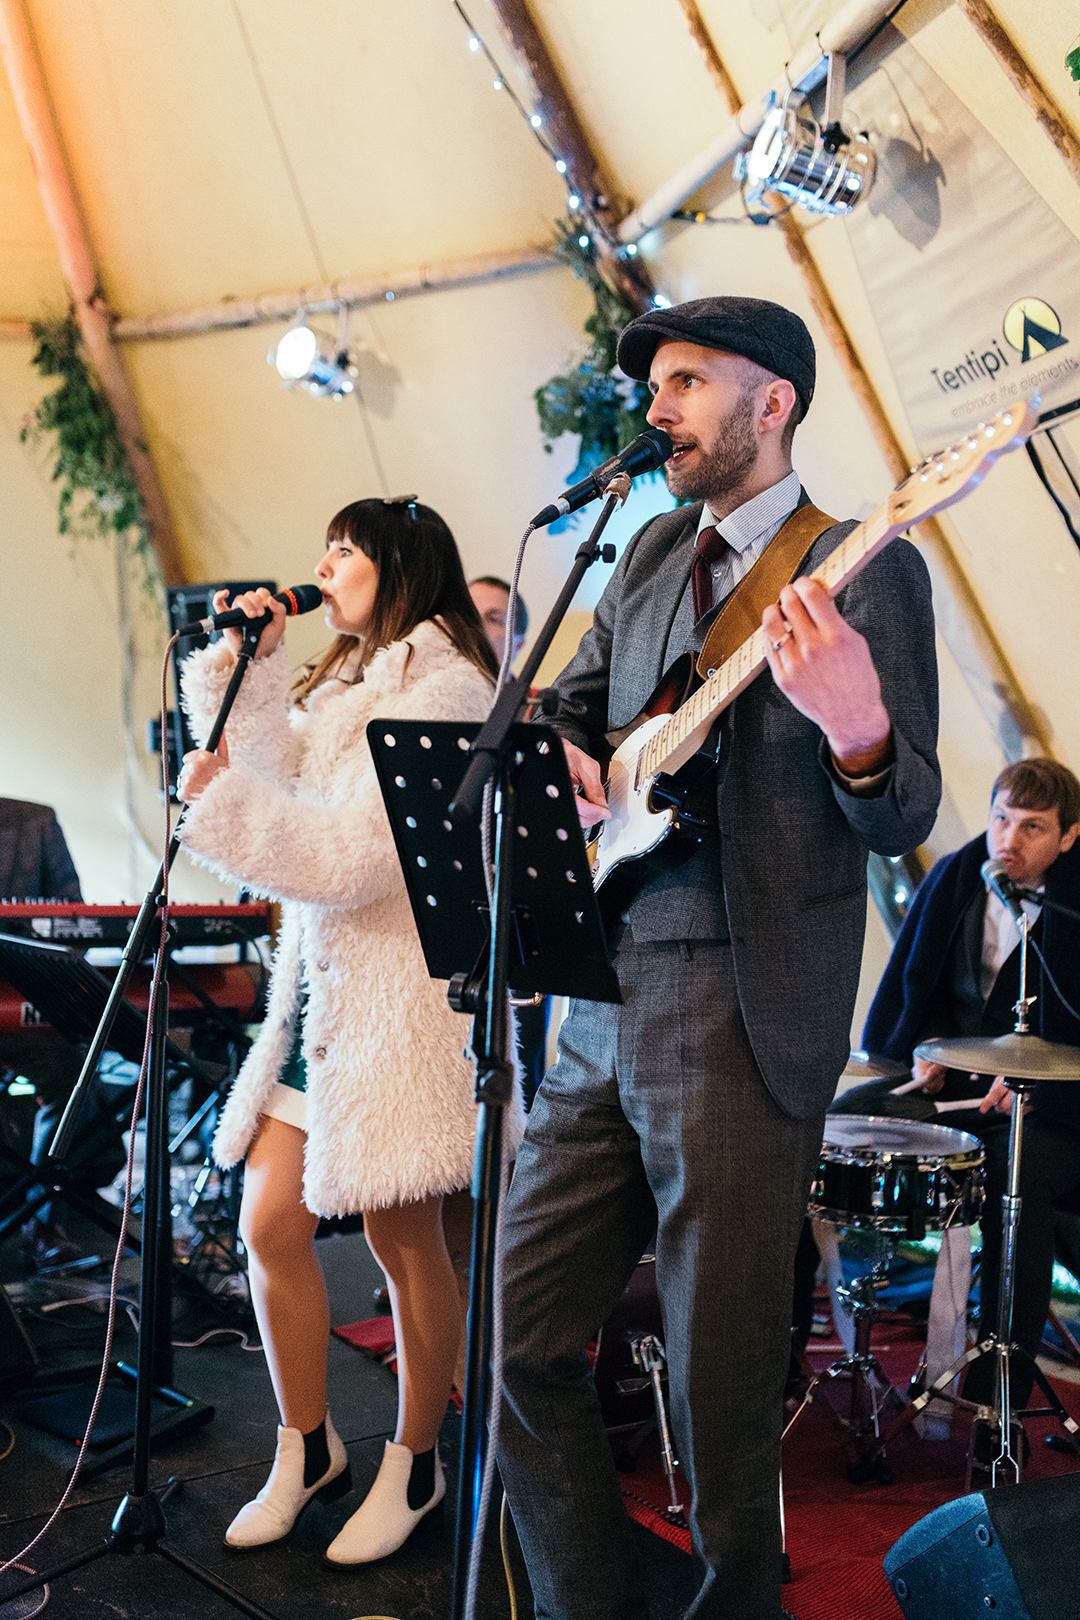 wedding-band-insite-a-wedding-tipi-at-a-festival-style-wedding